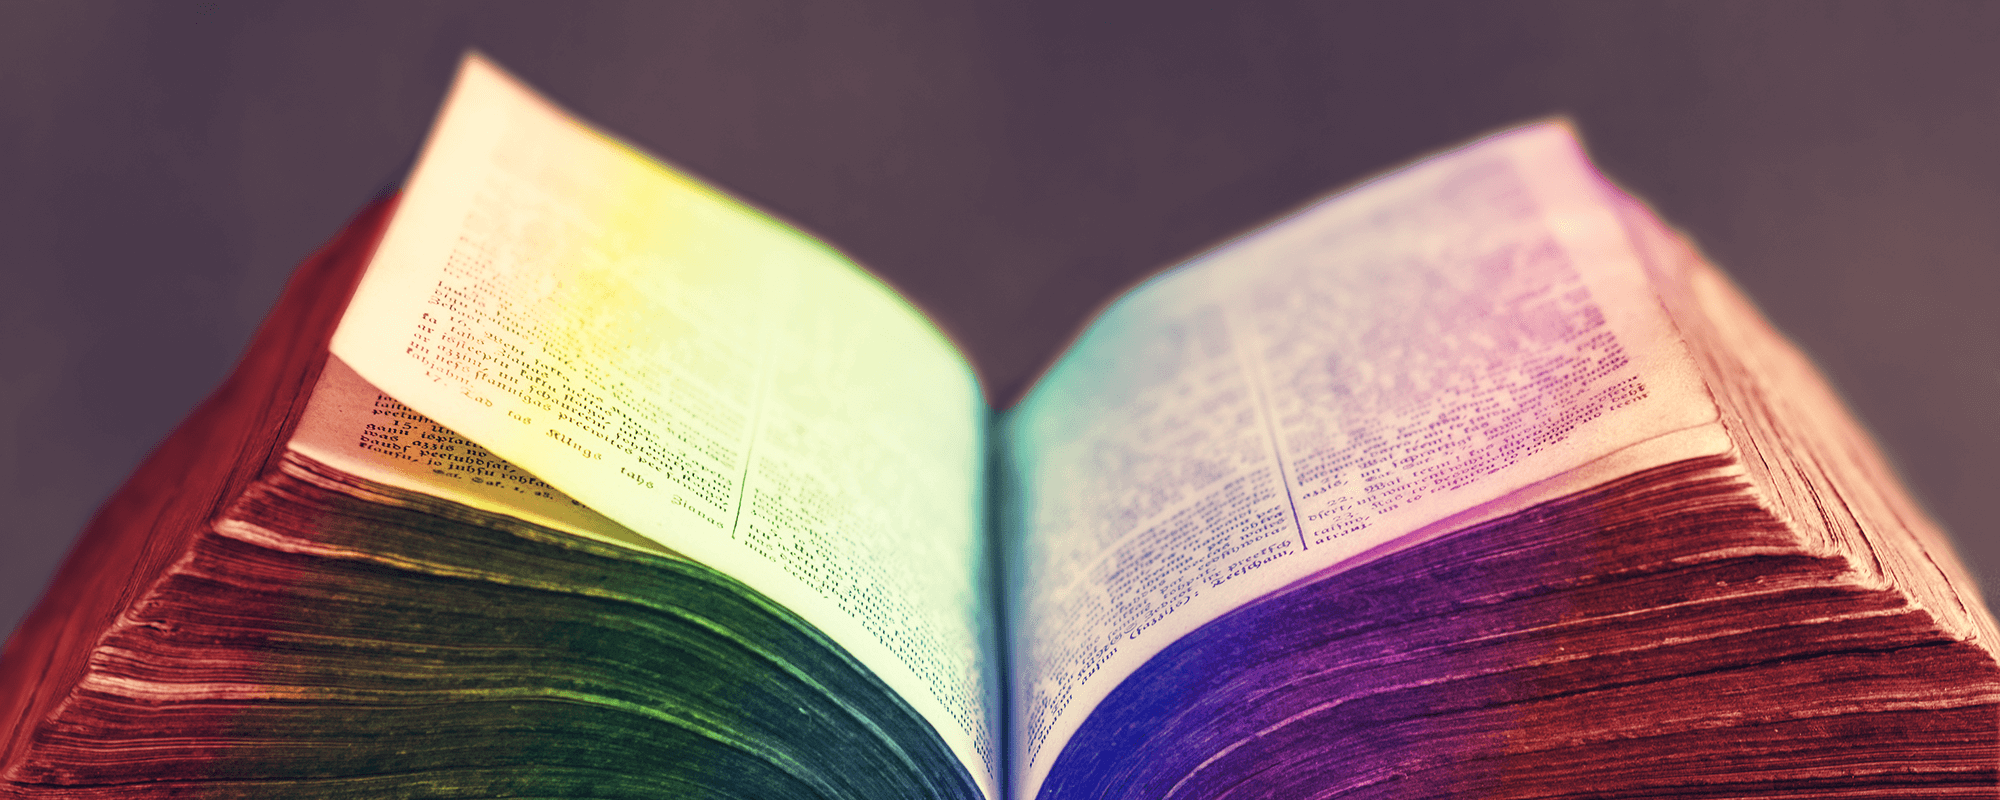 Seven biblical passages homosexuality in christianity